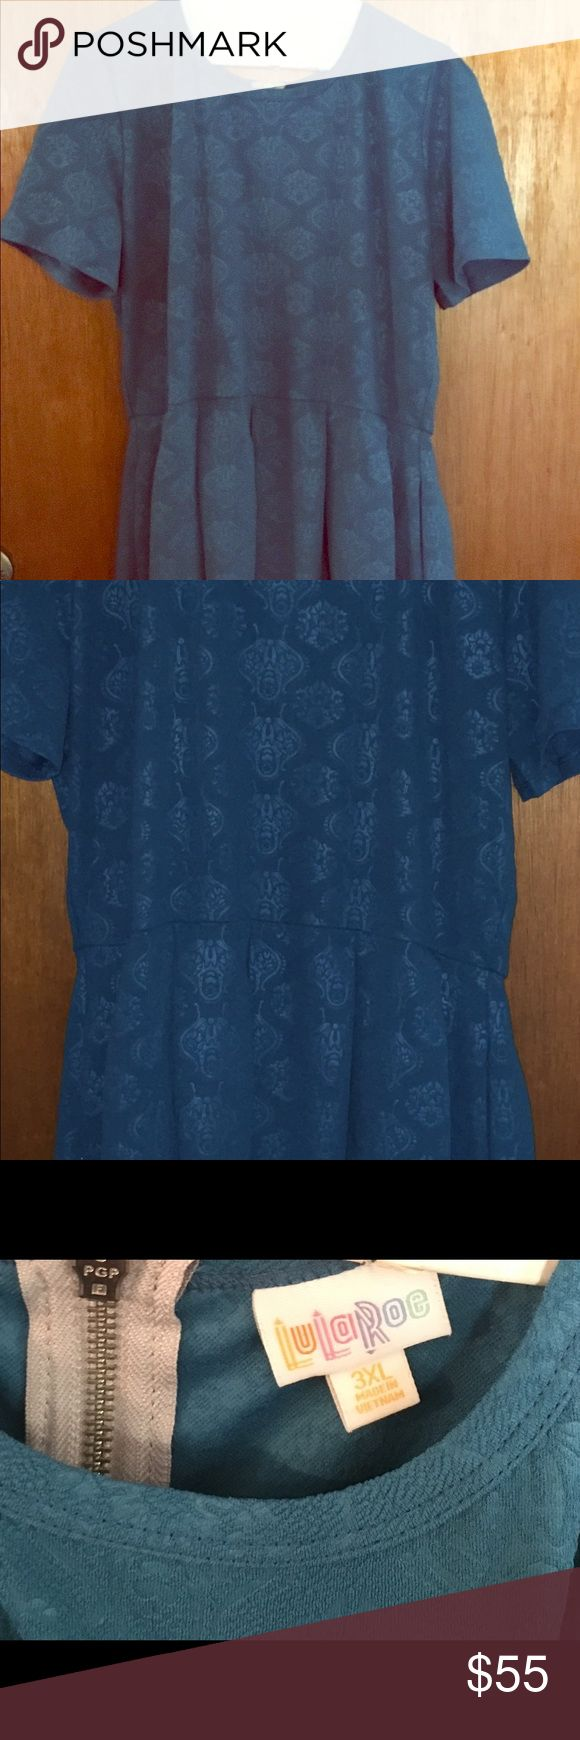 Lularoe Amelia dress 3x EUC Amelia dress in excellent condition. Worn once only and washed via lularoe standards. Jacquard fabric in dark teal color. LuLaRoe Dresses